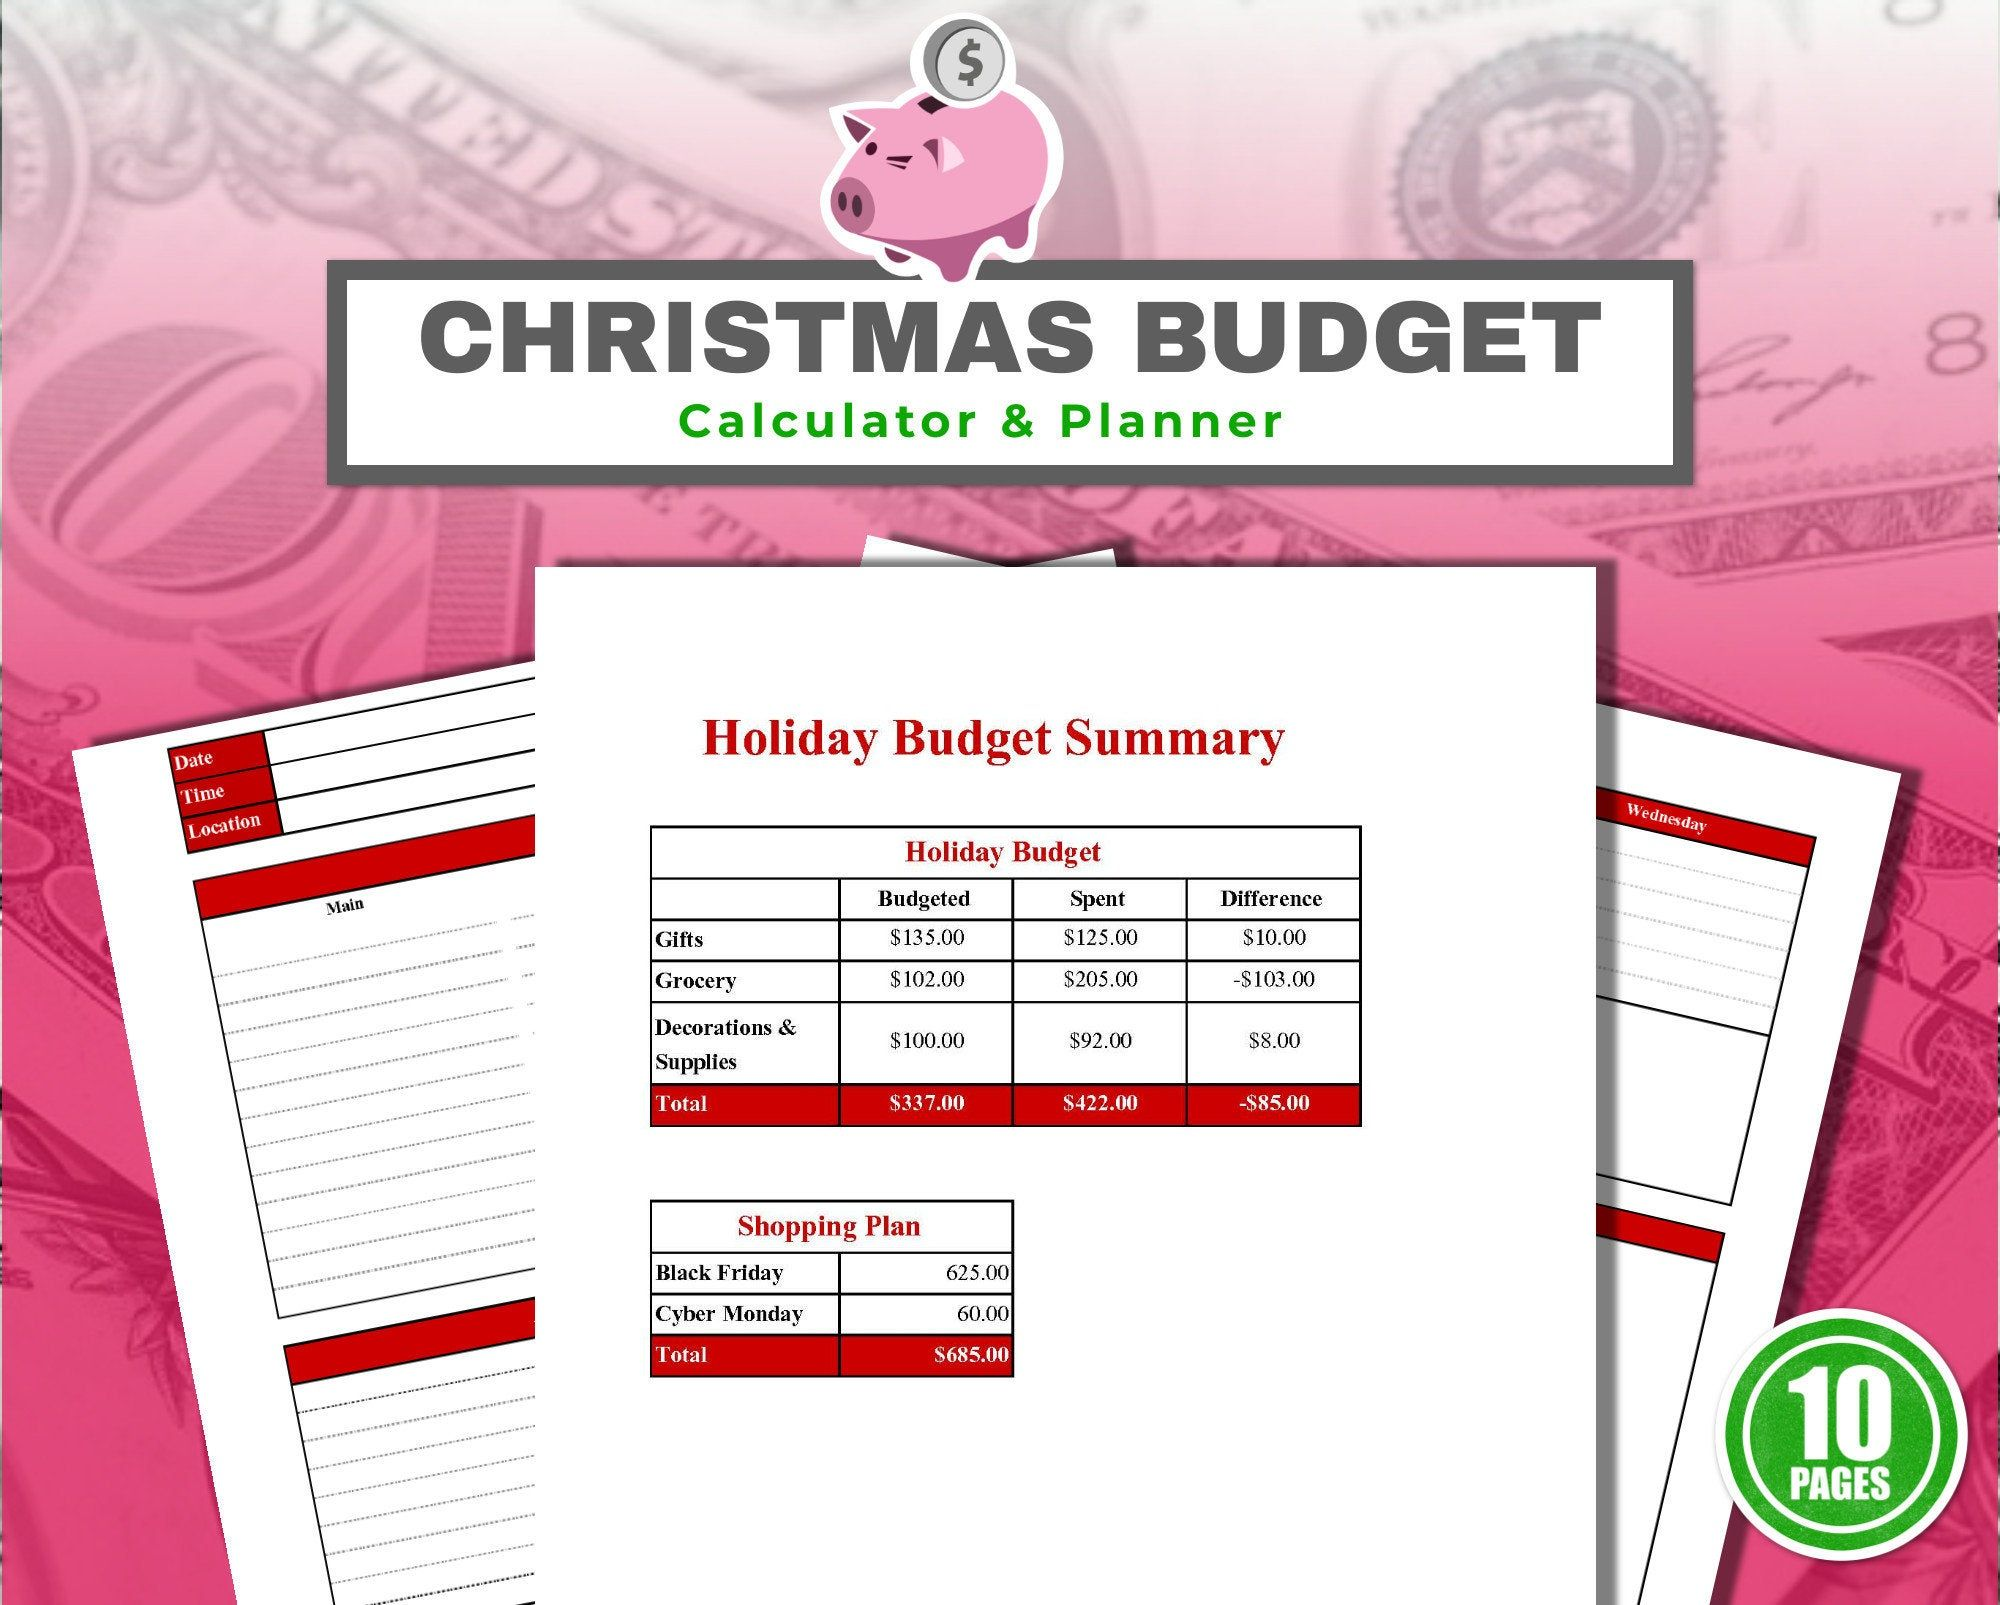 Christmas Budget Planner Printable With Calculator 10